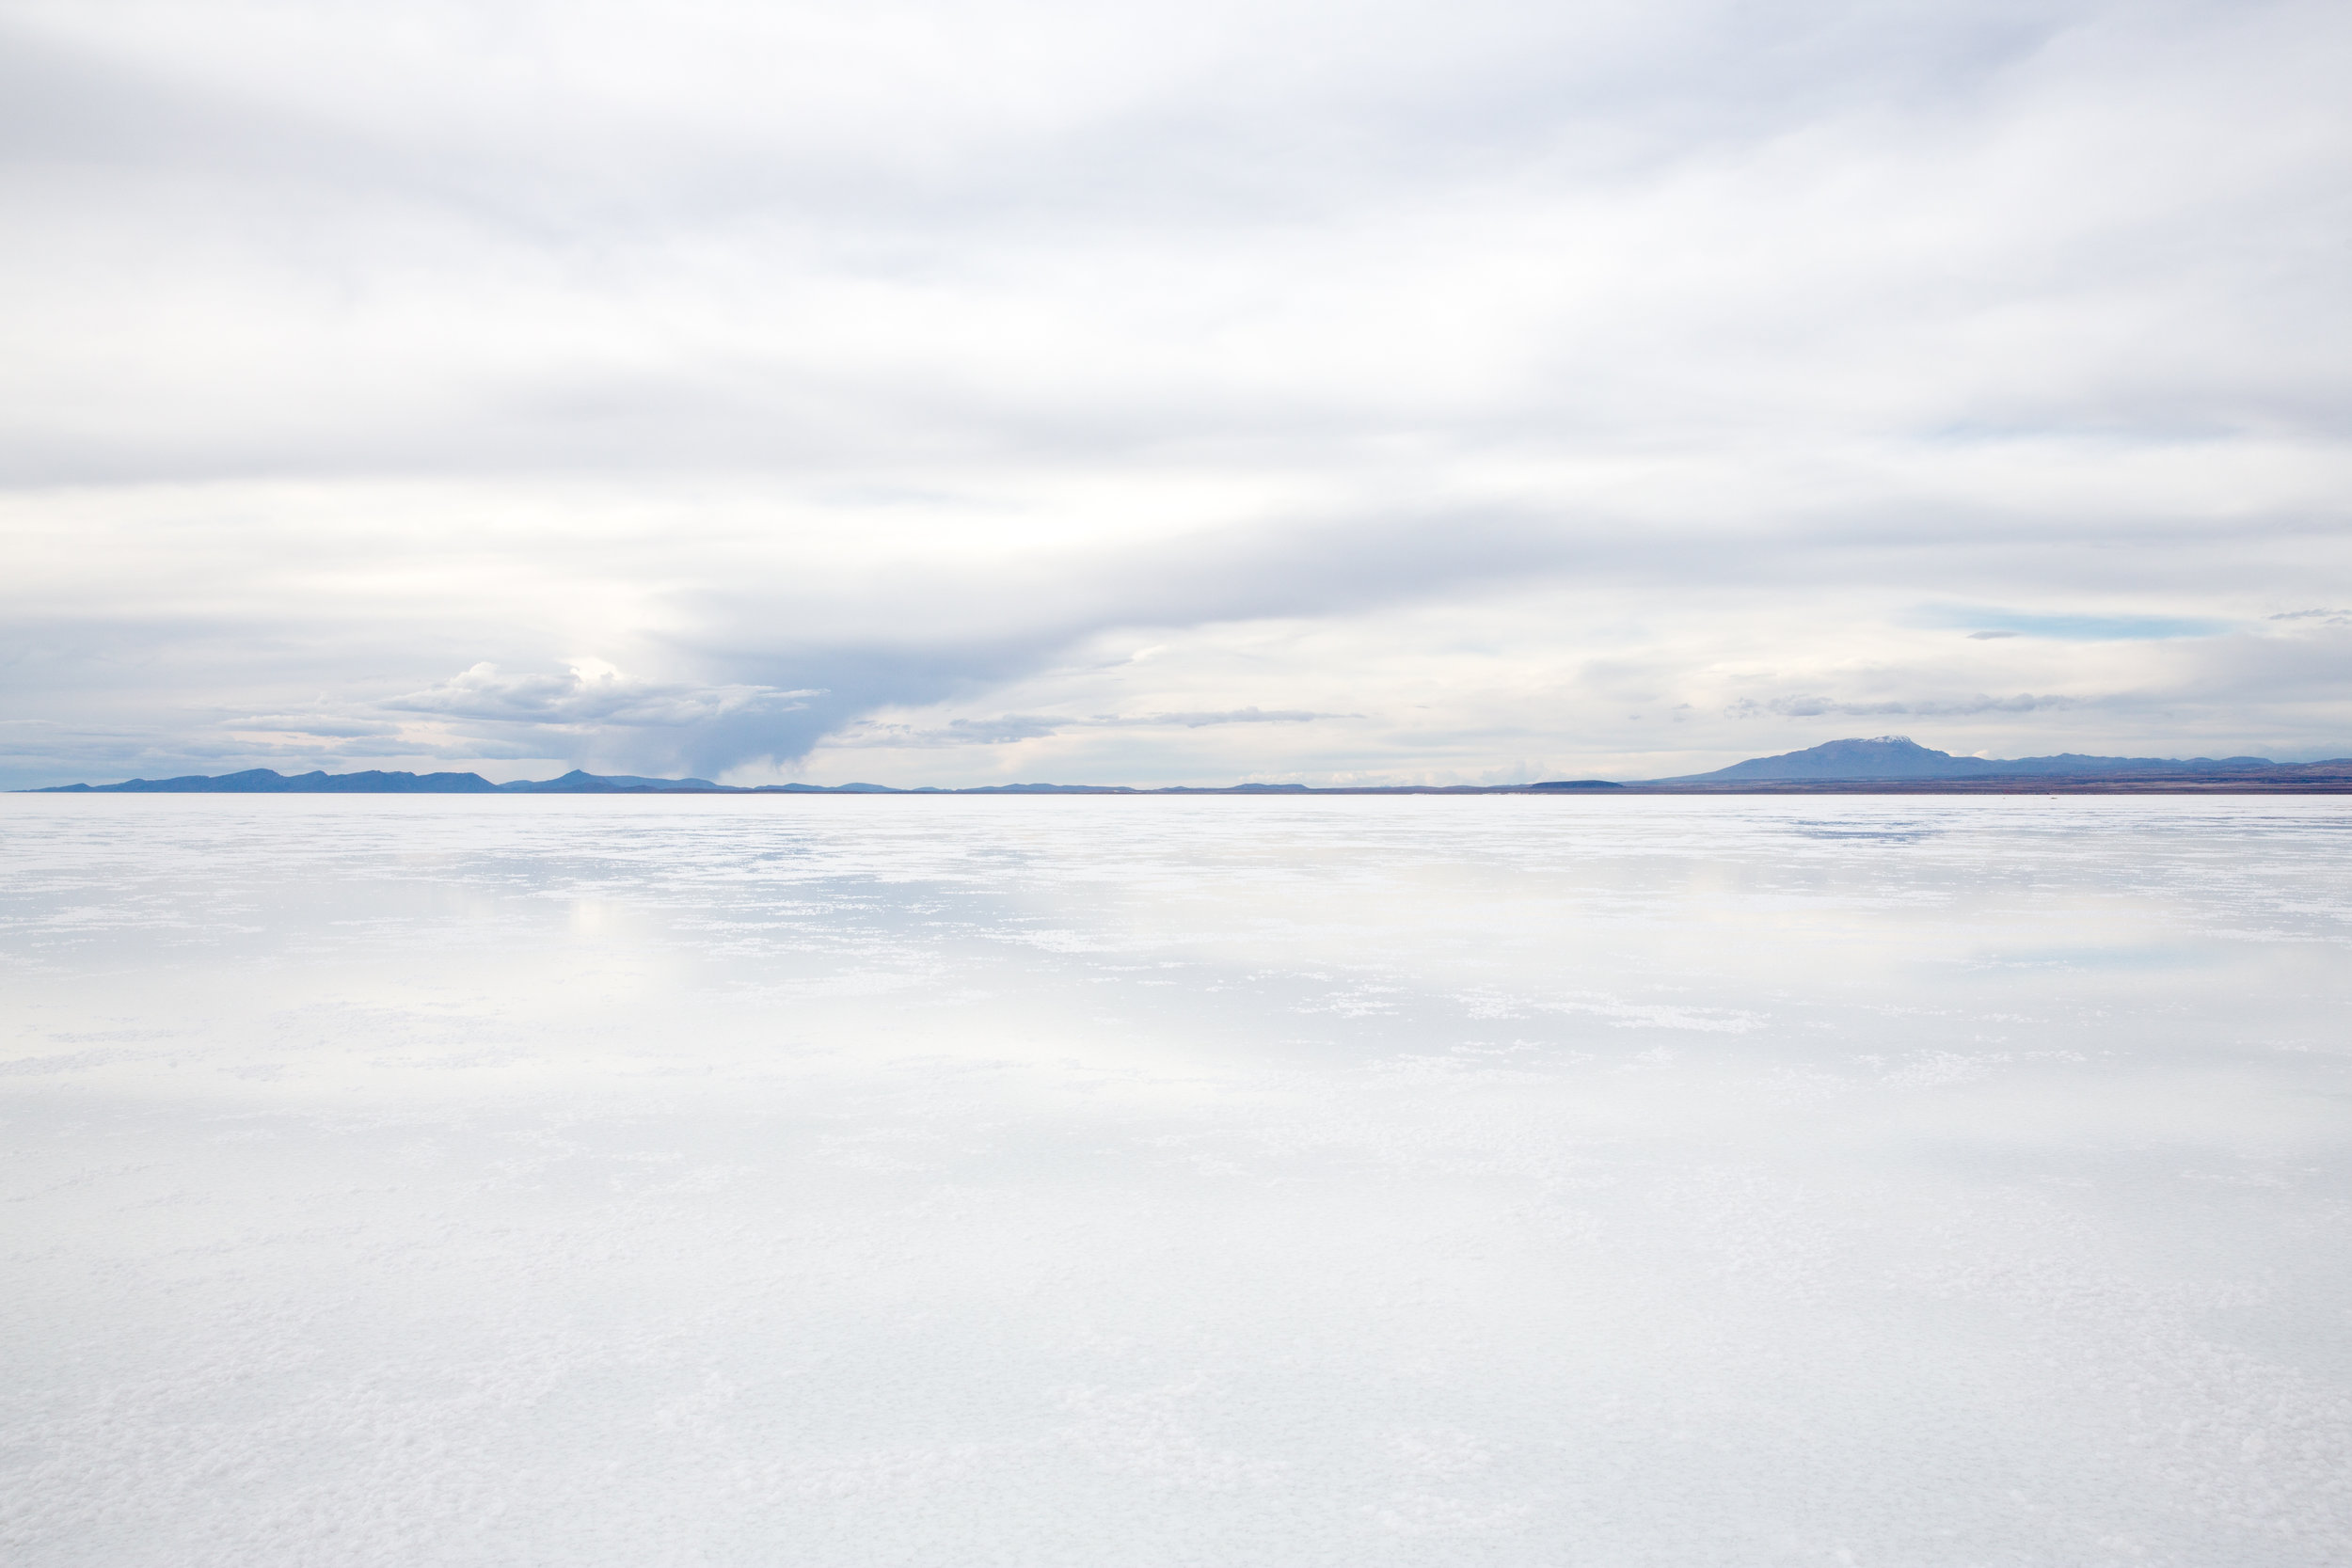 After the rainy season some areas of the Salt Flats keep a shallow lake of water. The reflective effect is luminous and serene!